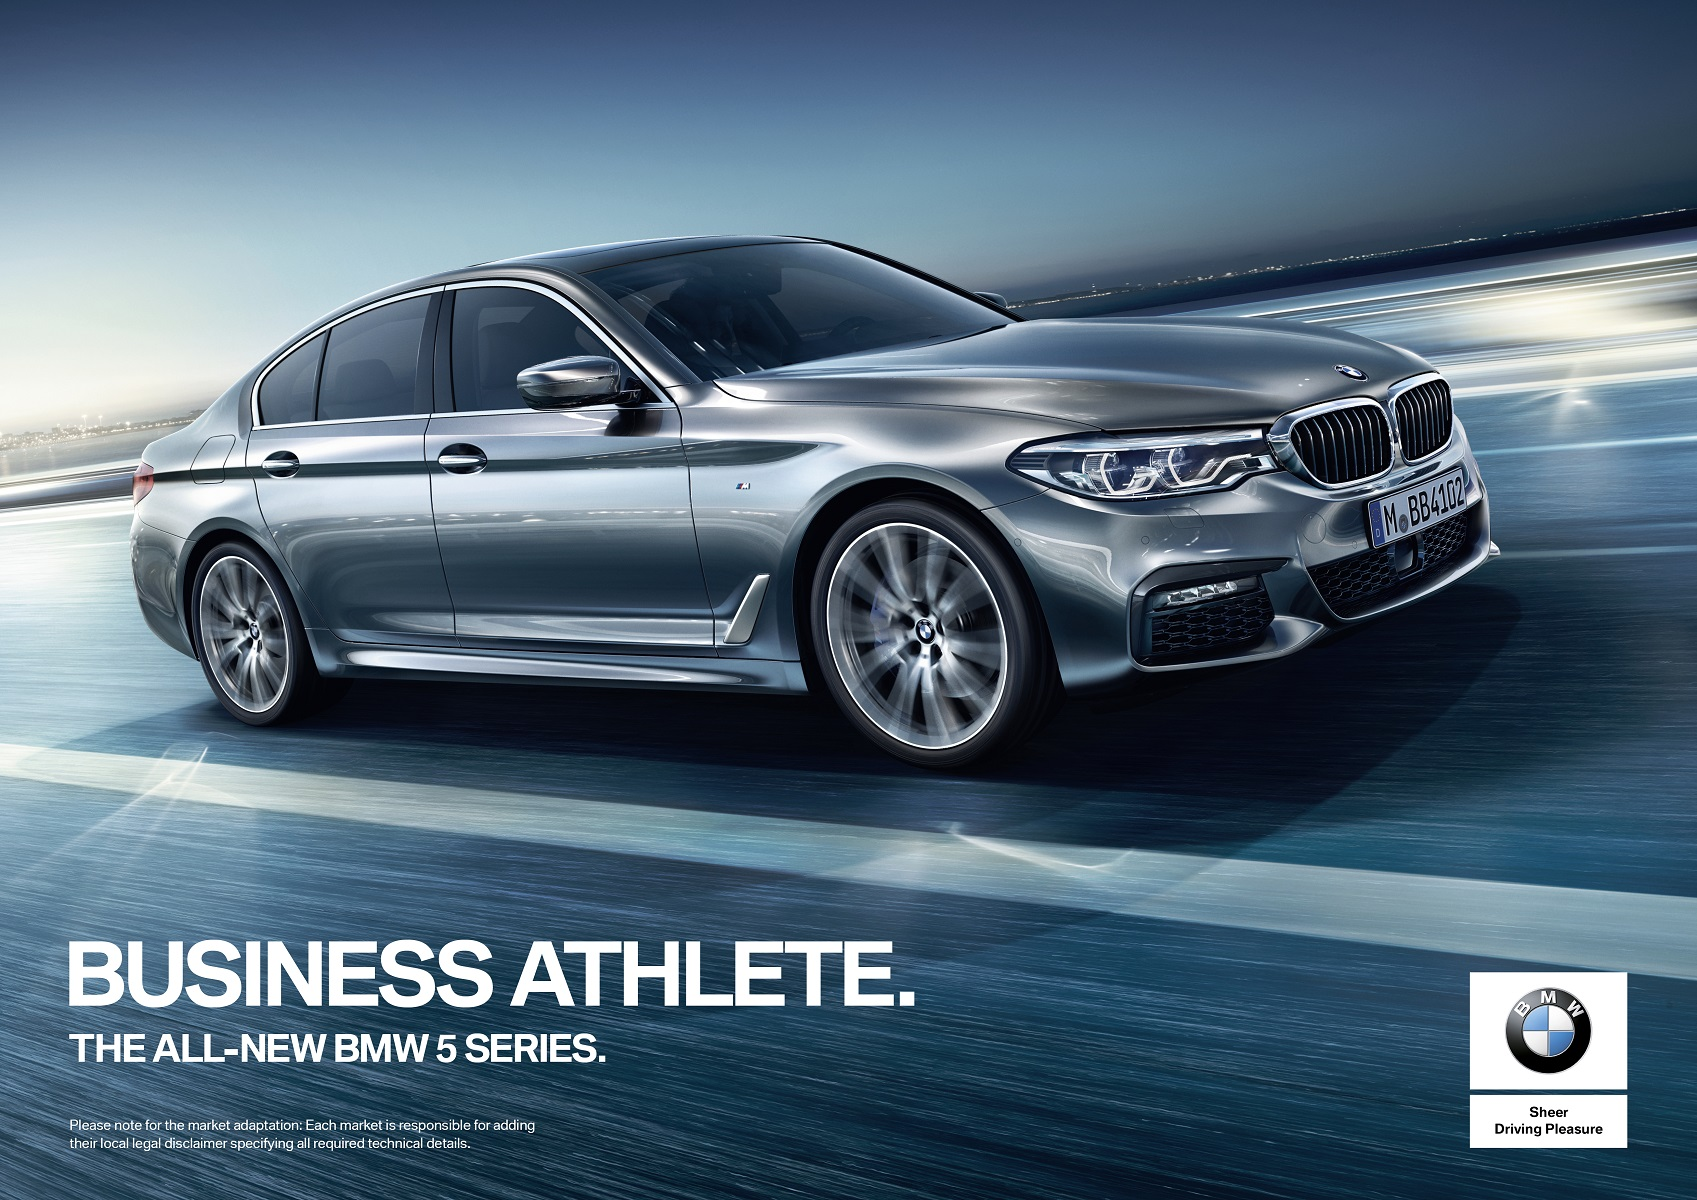 X4 Tuning >> Actor Scott Eastwood is the image of the new BMW 5 Series